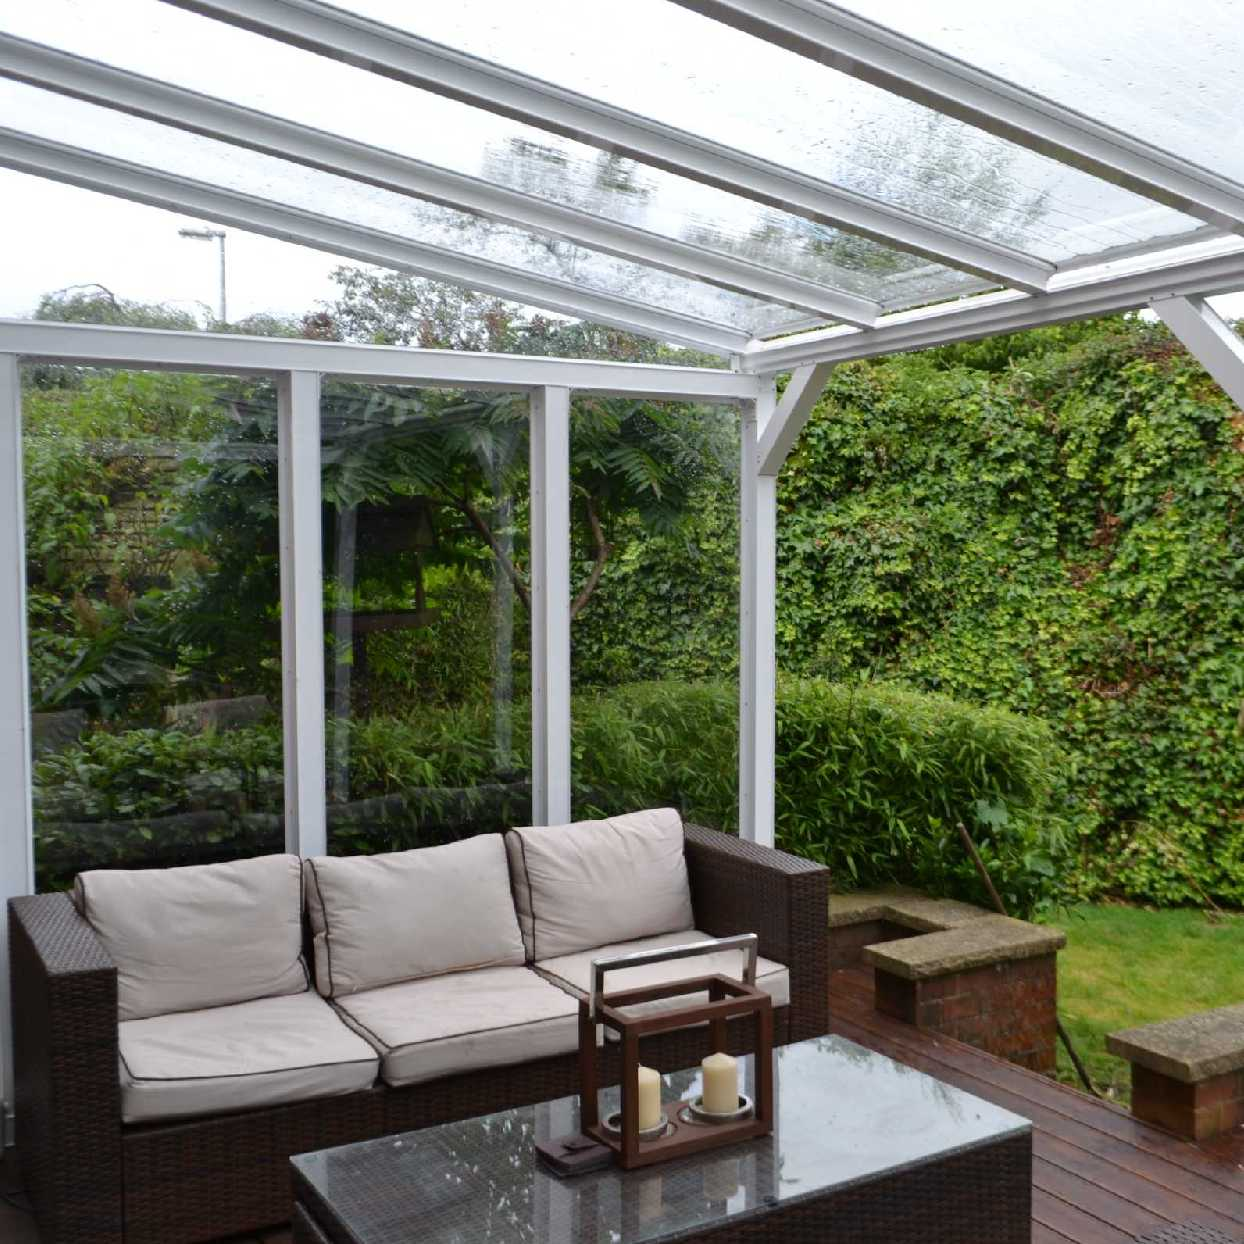 Great selection of Omega Smart Lean-To Canopy with 16mm Polycarbonate Glazing - 2.1m (W) x 1.5m (P), (2) Supporting Posts